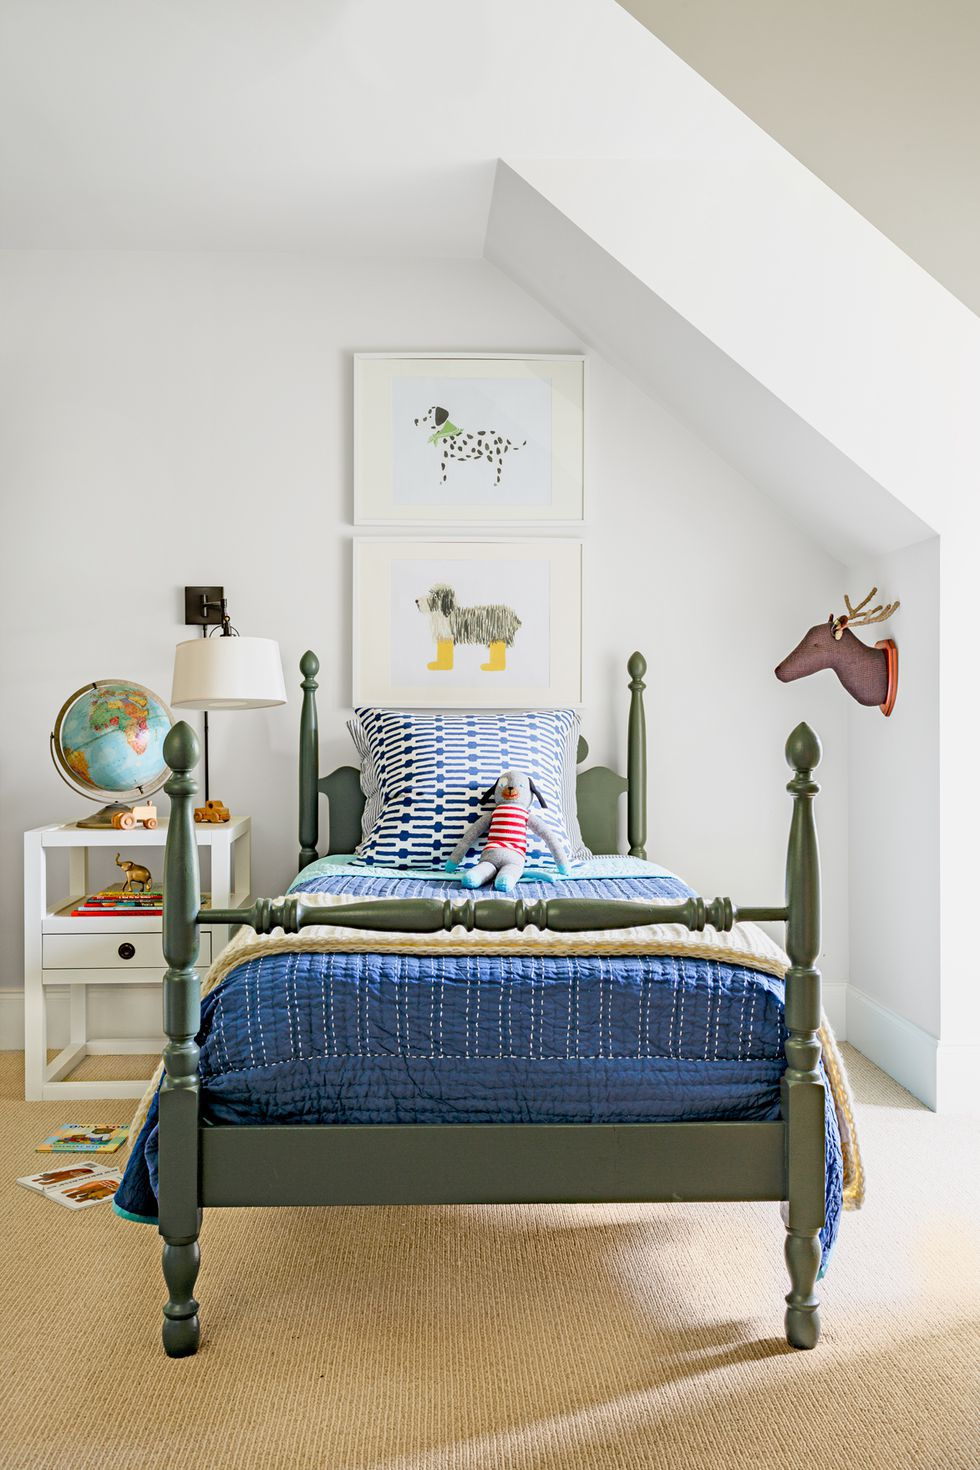 The Coolest Decorating Ideas For Your Kids Bedroom Design 2 Kids Bedroom Design The Coolest Decorating Ideas For Your Kids Bedroom Design The Coolest Decorating Ideas For Your Kids Bedroom Design 2